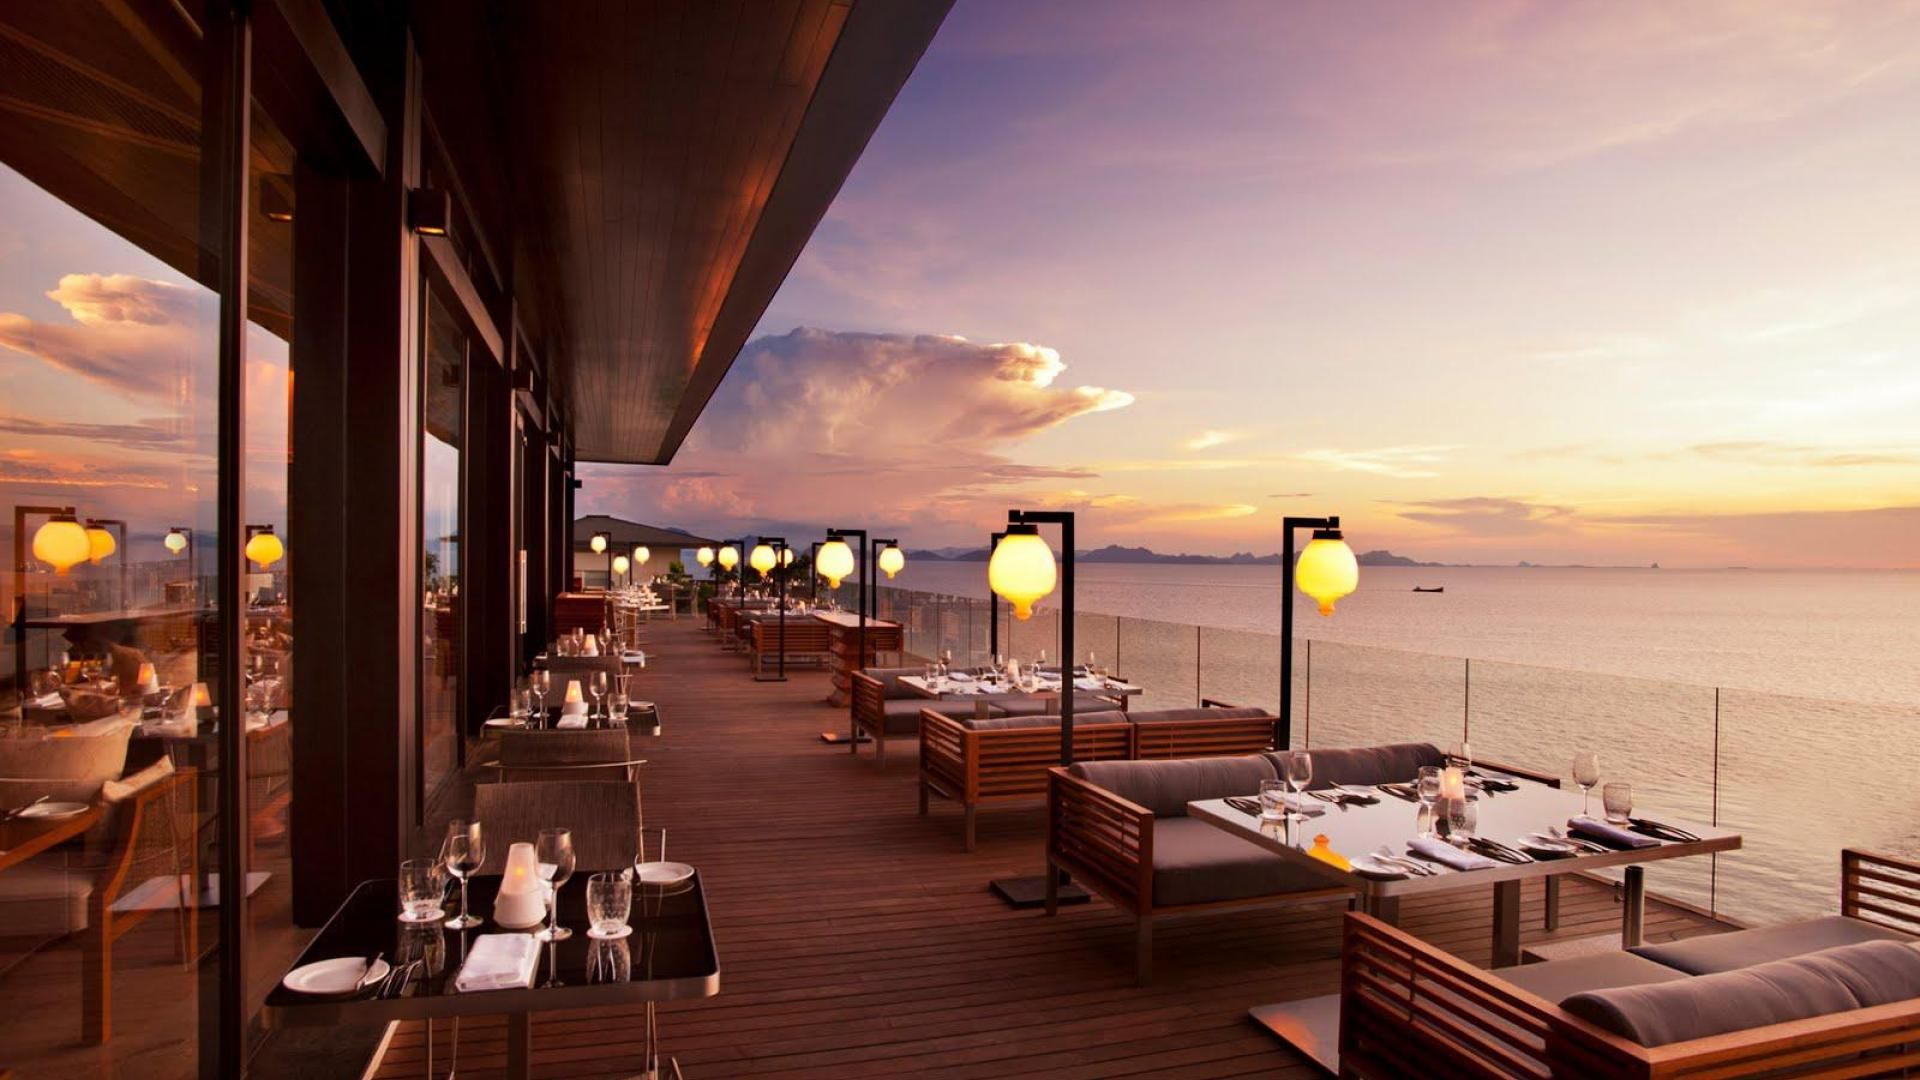 Download Hd Wallpapers Of Superb Seaside Restaurant HD Desktop Background Free High Quality And Widescreen Resolutions Images